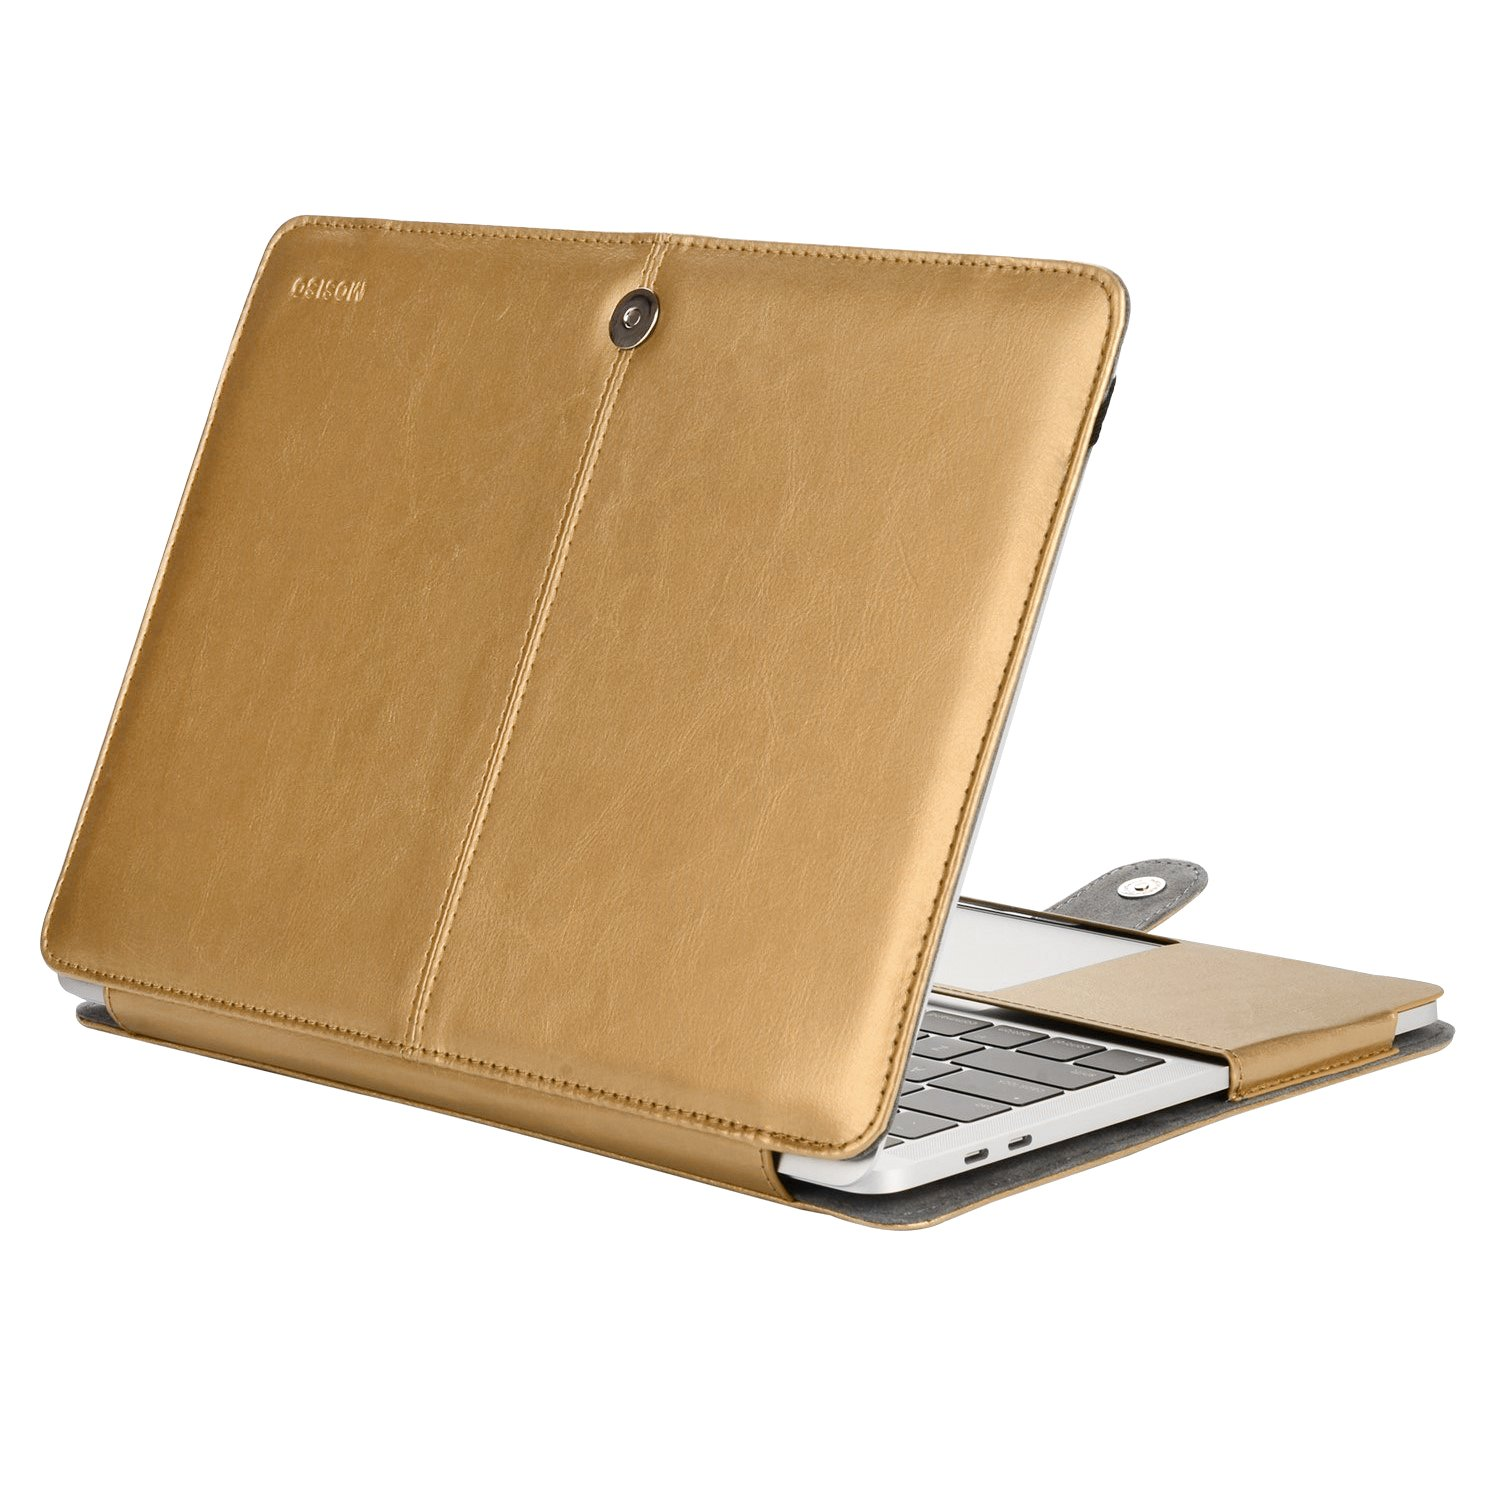 Amazon Com Mosiso Macbook Pro 15 Inch Case A1990 A1707 2019 2016 Release Pu Leather Book Folio Protective Stand Cover Sleeve With Black Strip Compatible With Macbook Pro 15 Inch With Touch Bar Gold Electronics